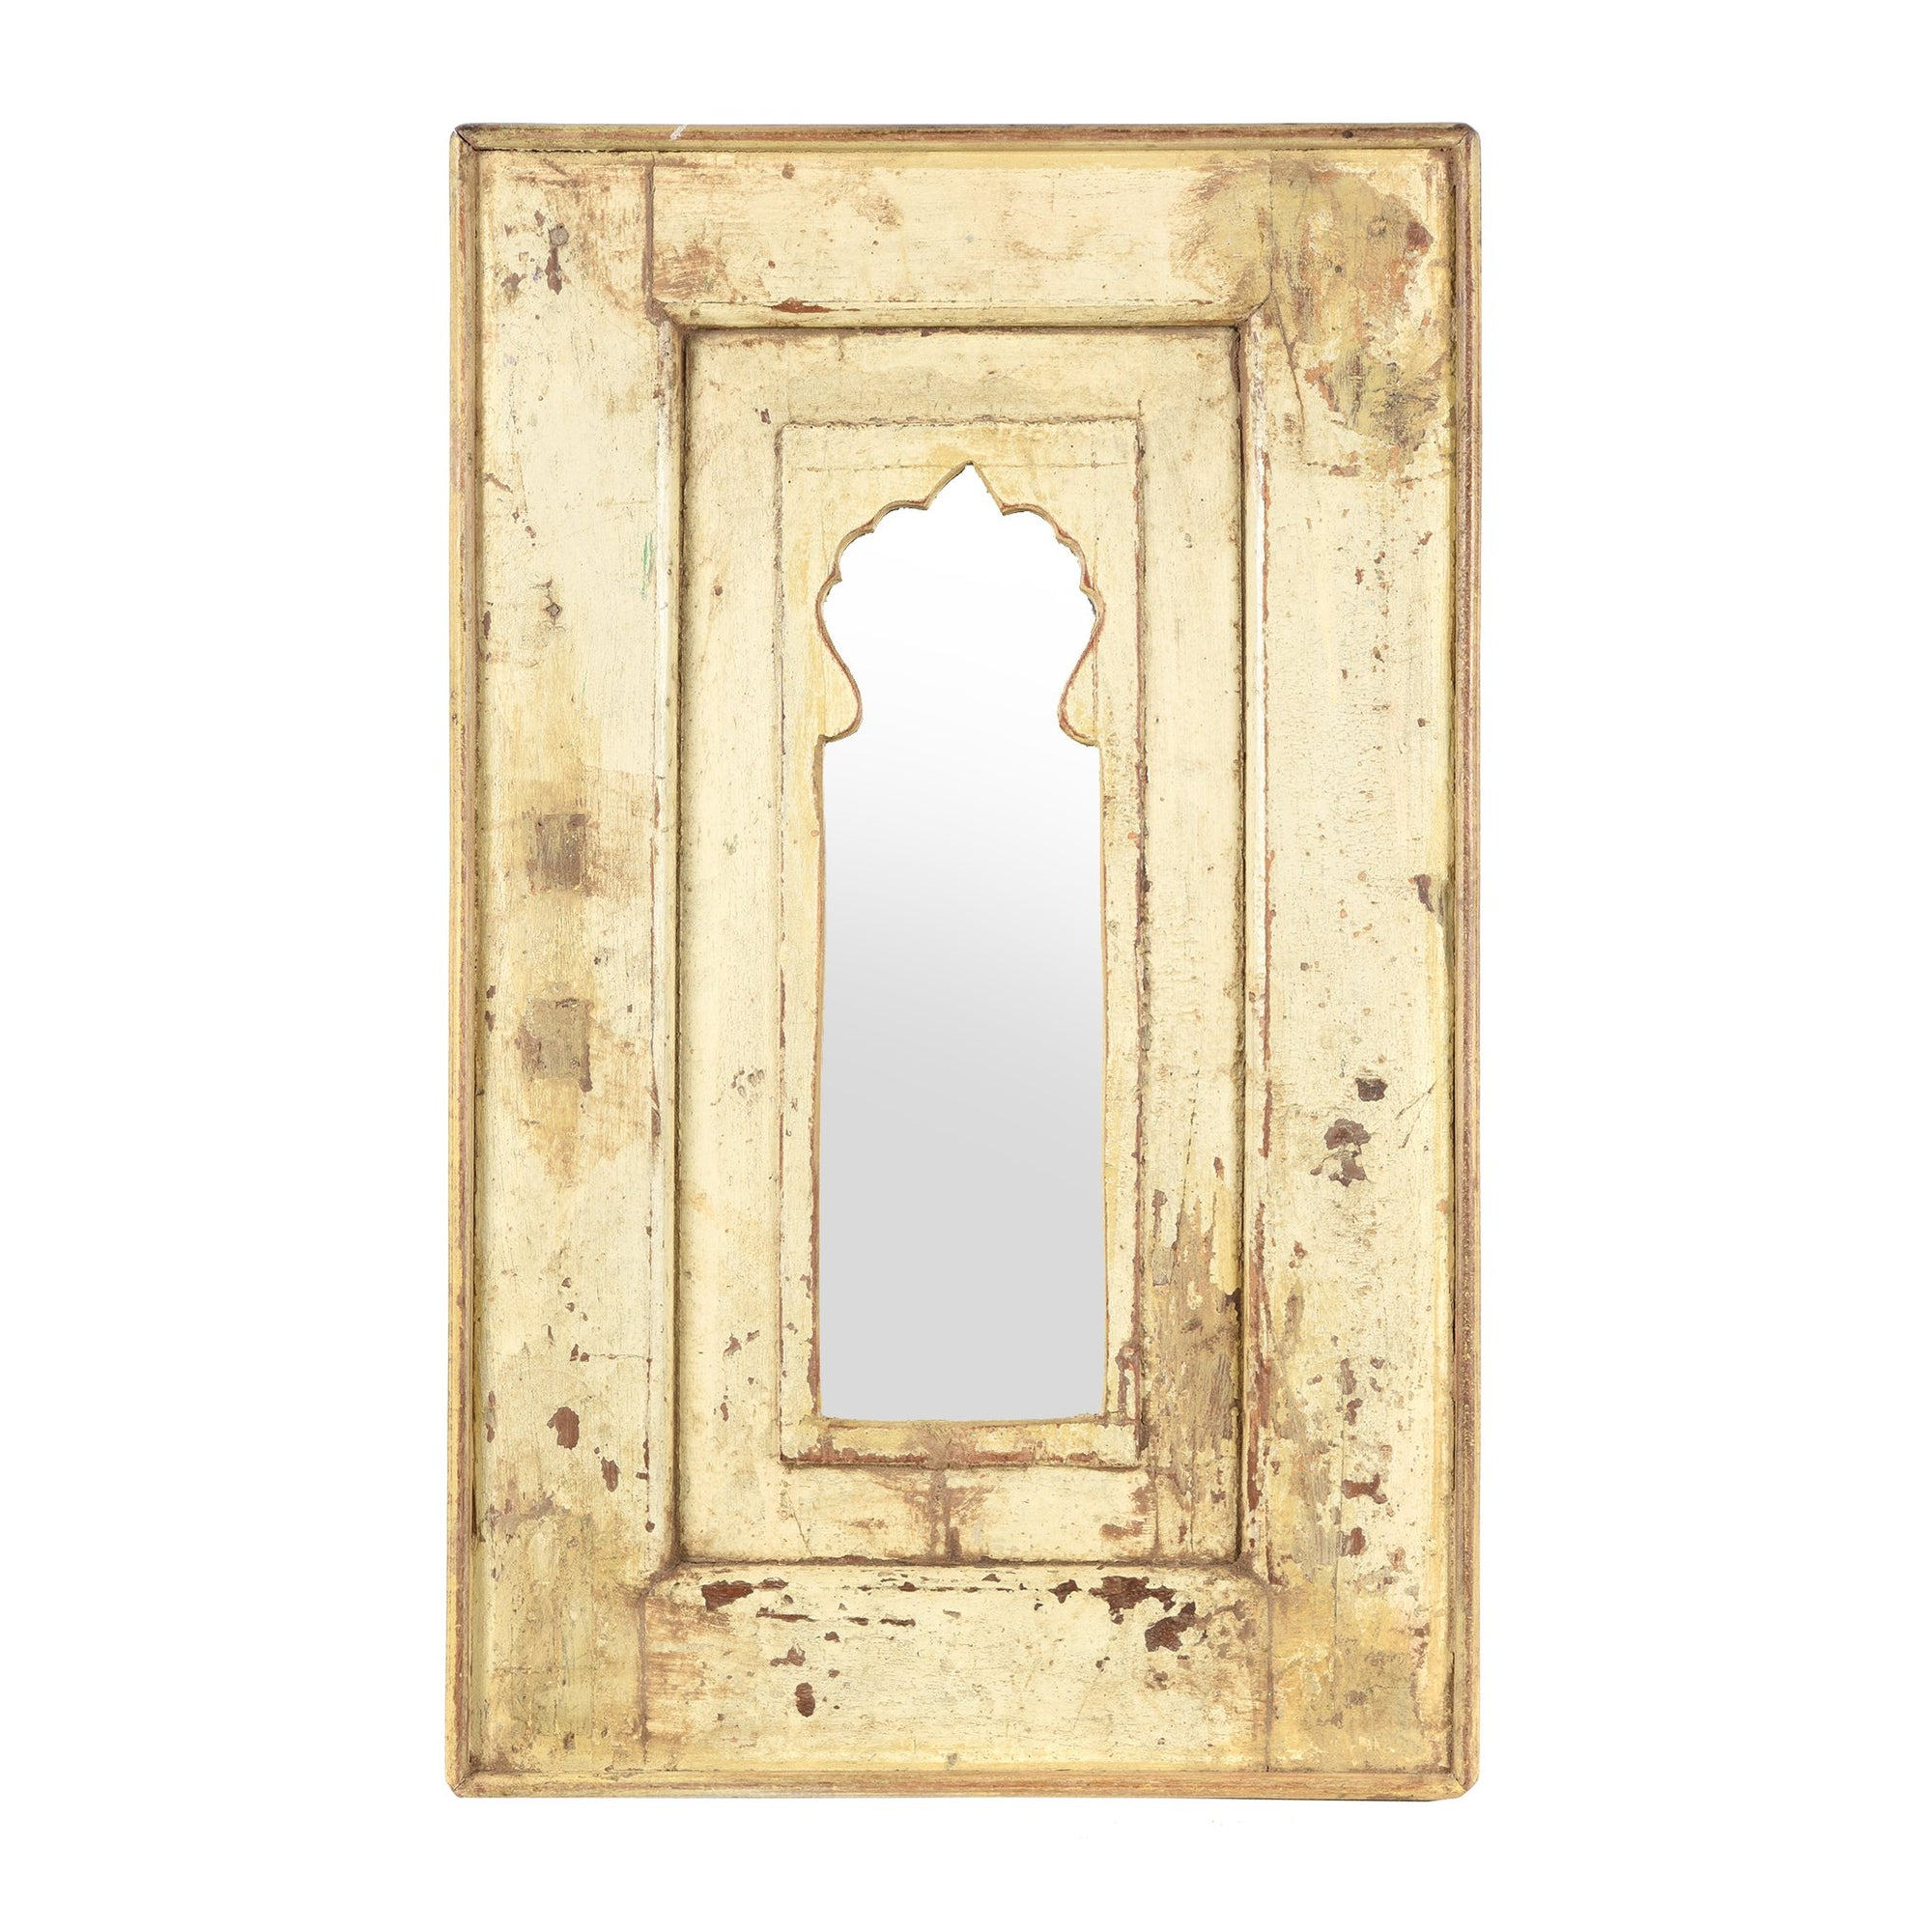 Mihrab Mirror Frame Made From Old Teak | Indigo Antiques